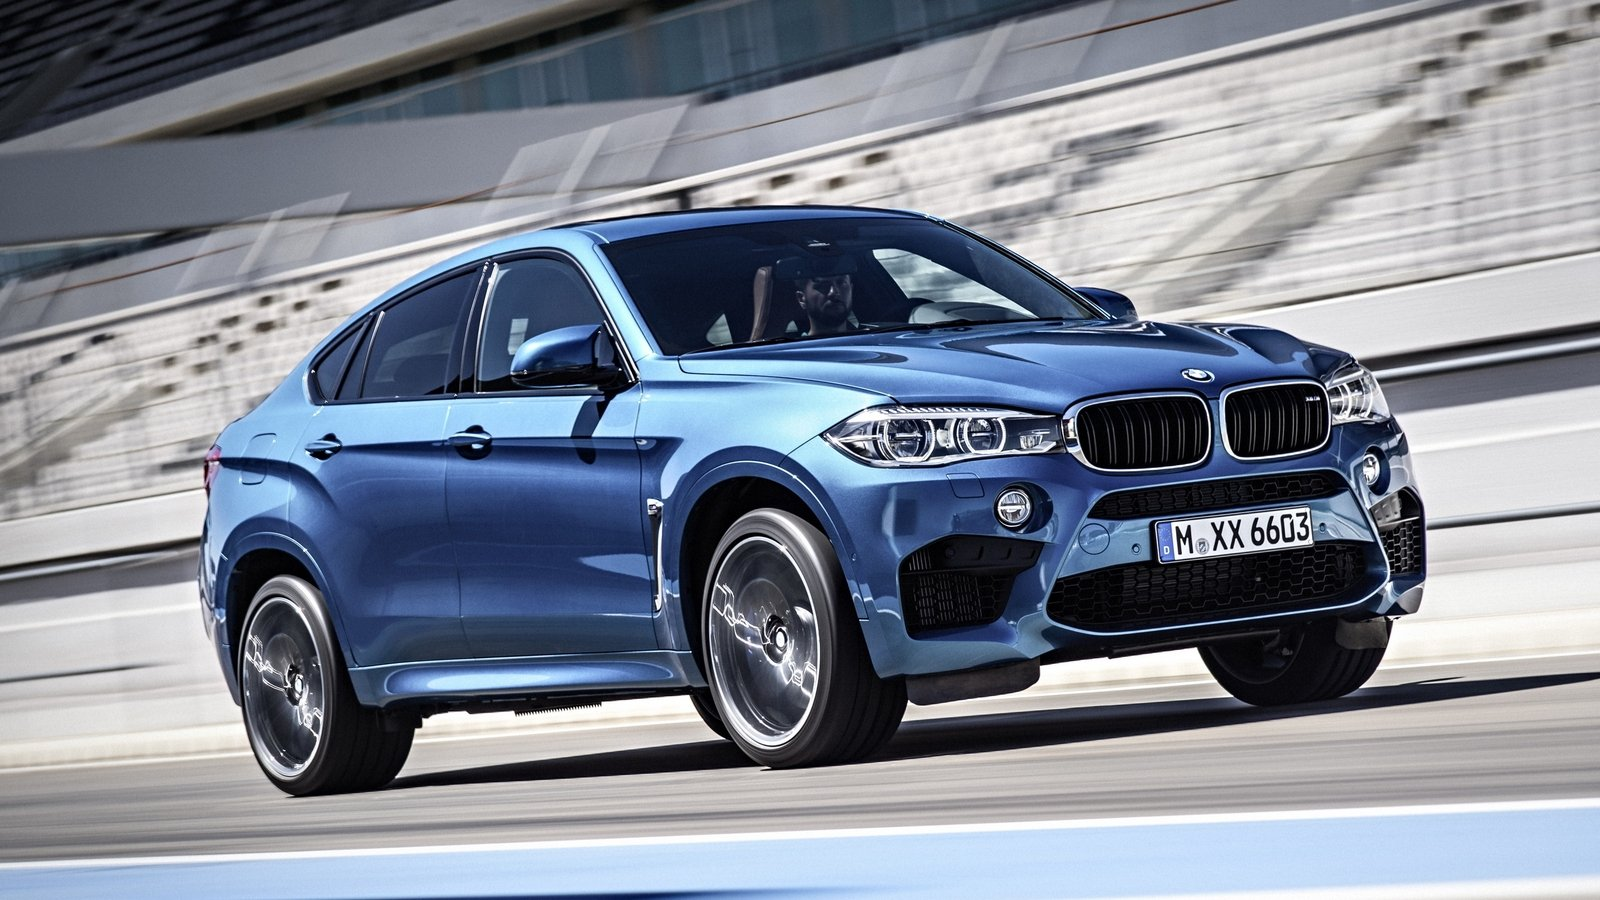 Bmw x6 m reportedly lapped the nurburgring in 8 20